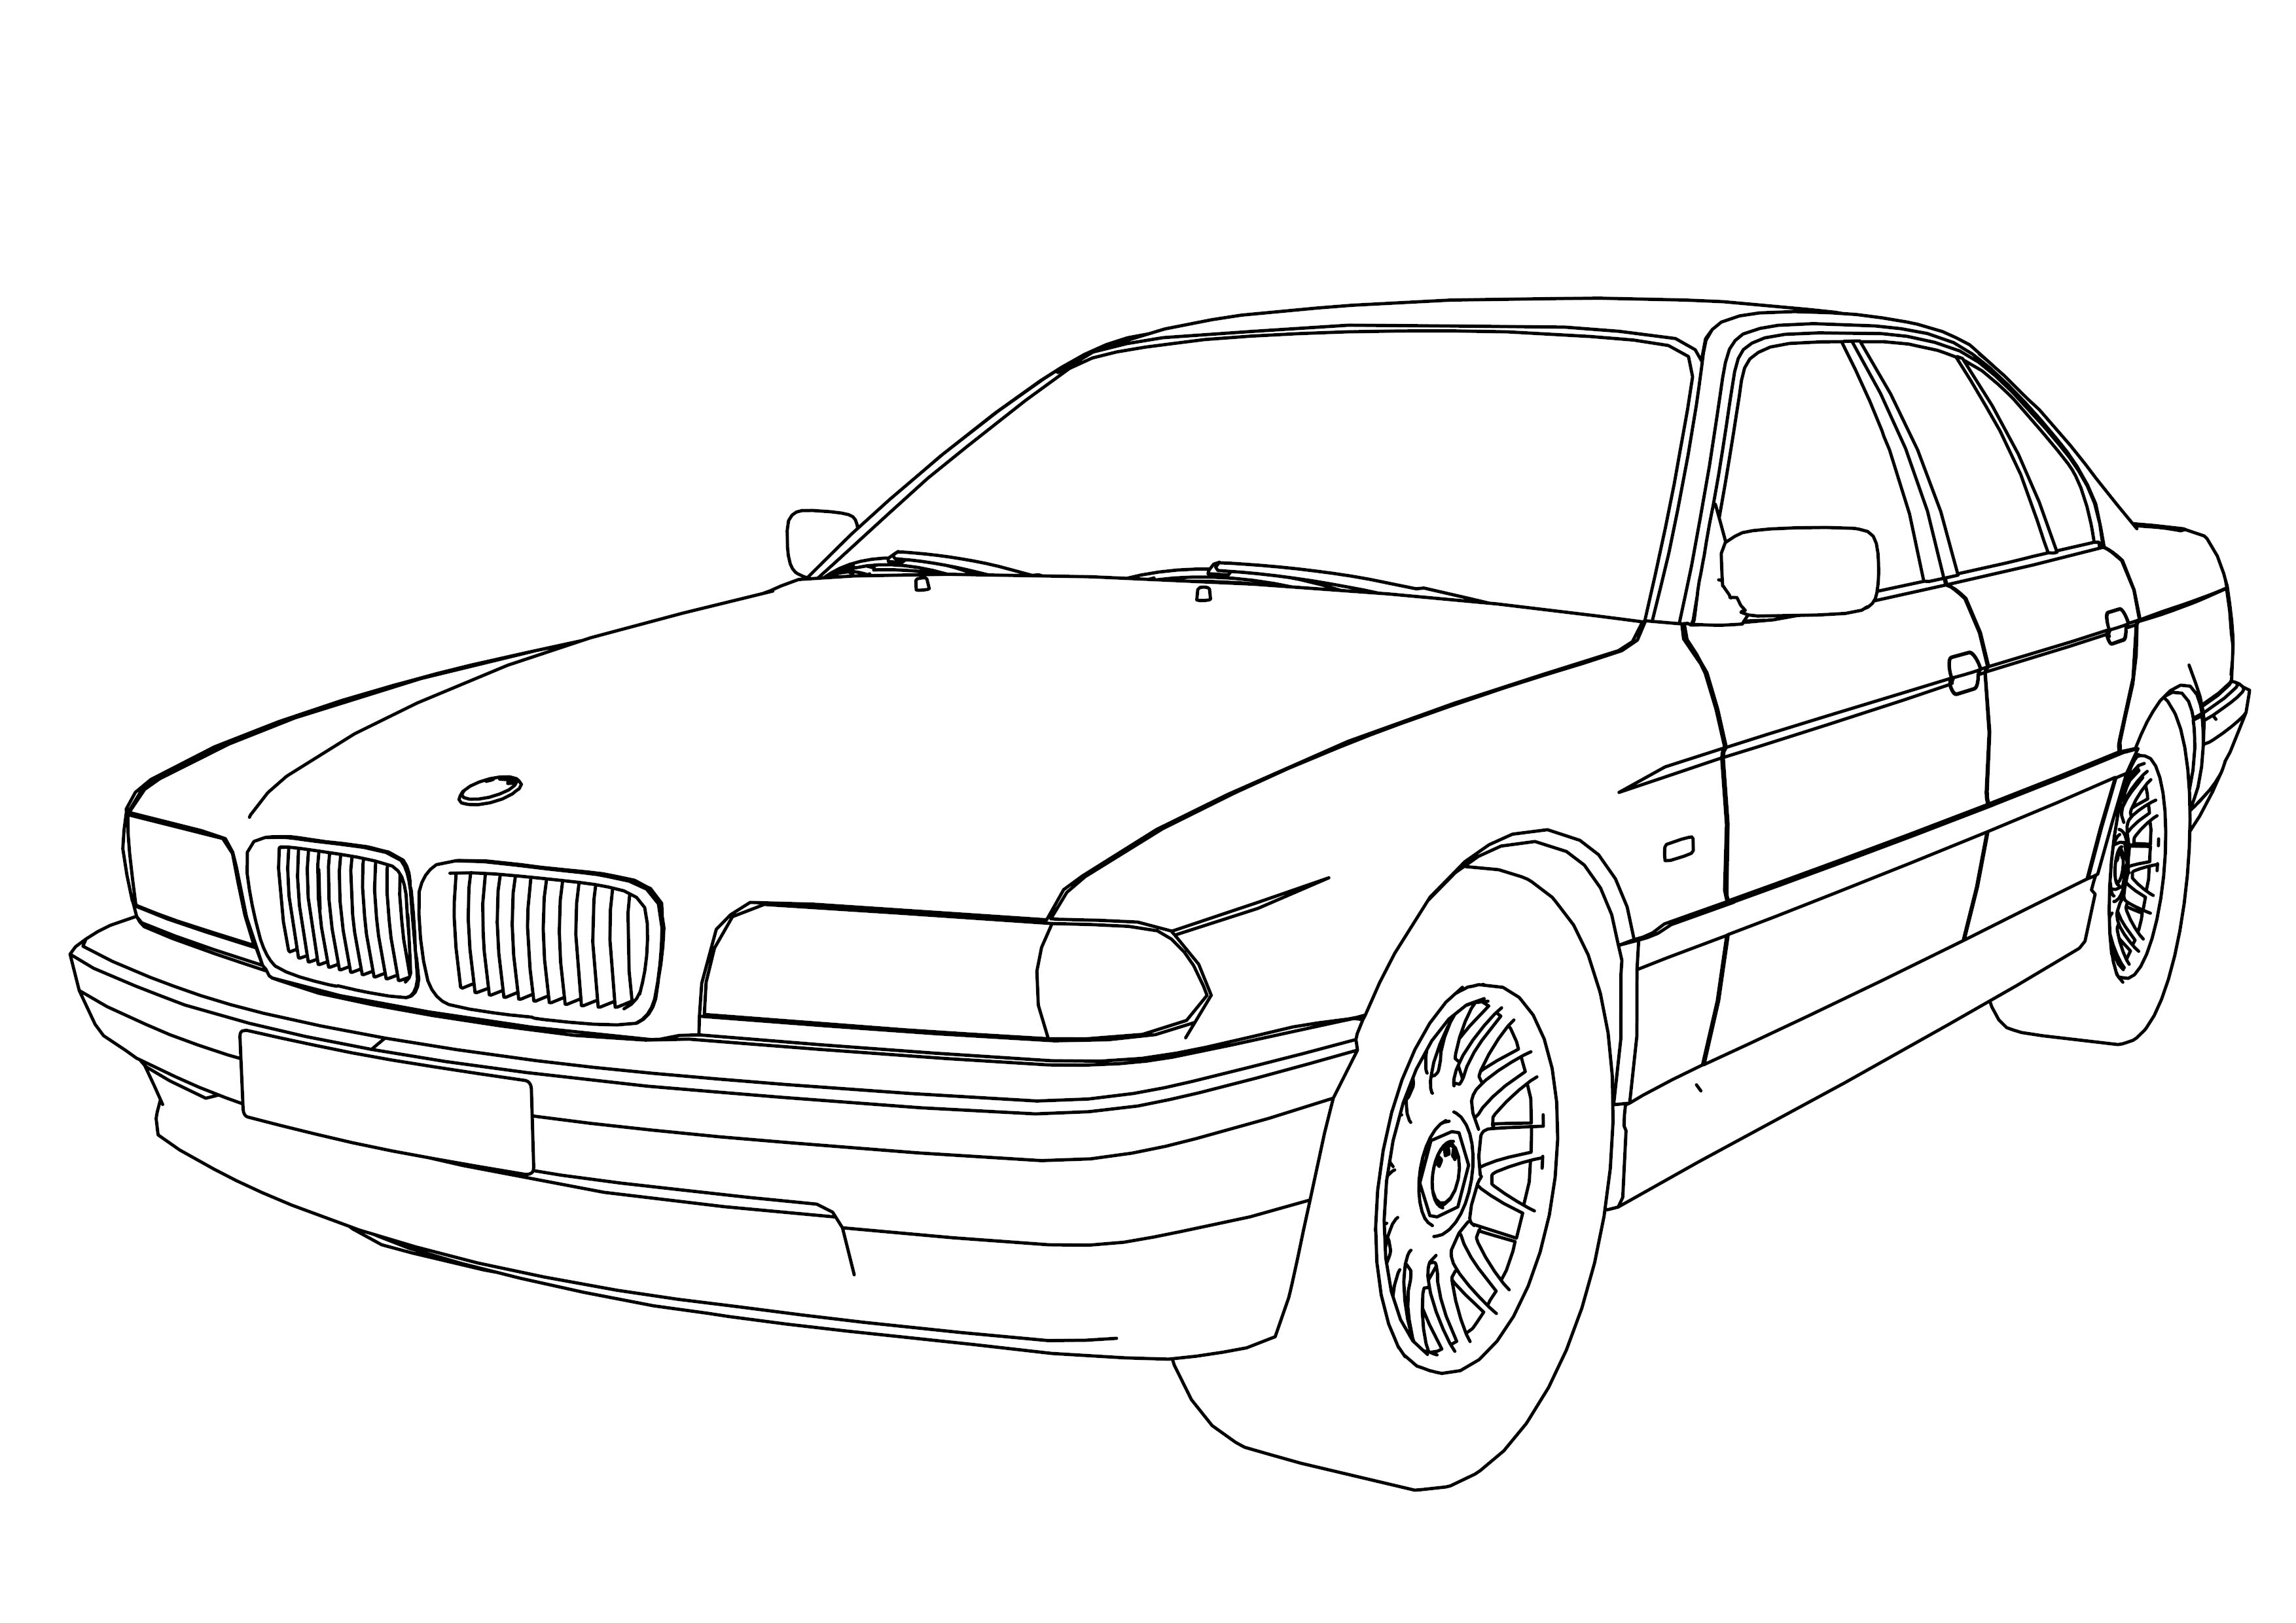 Bmw 750 Model Car Coloring Page Toimintaterapia Pinterest